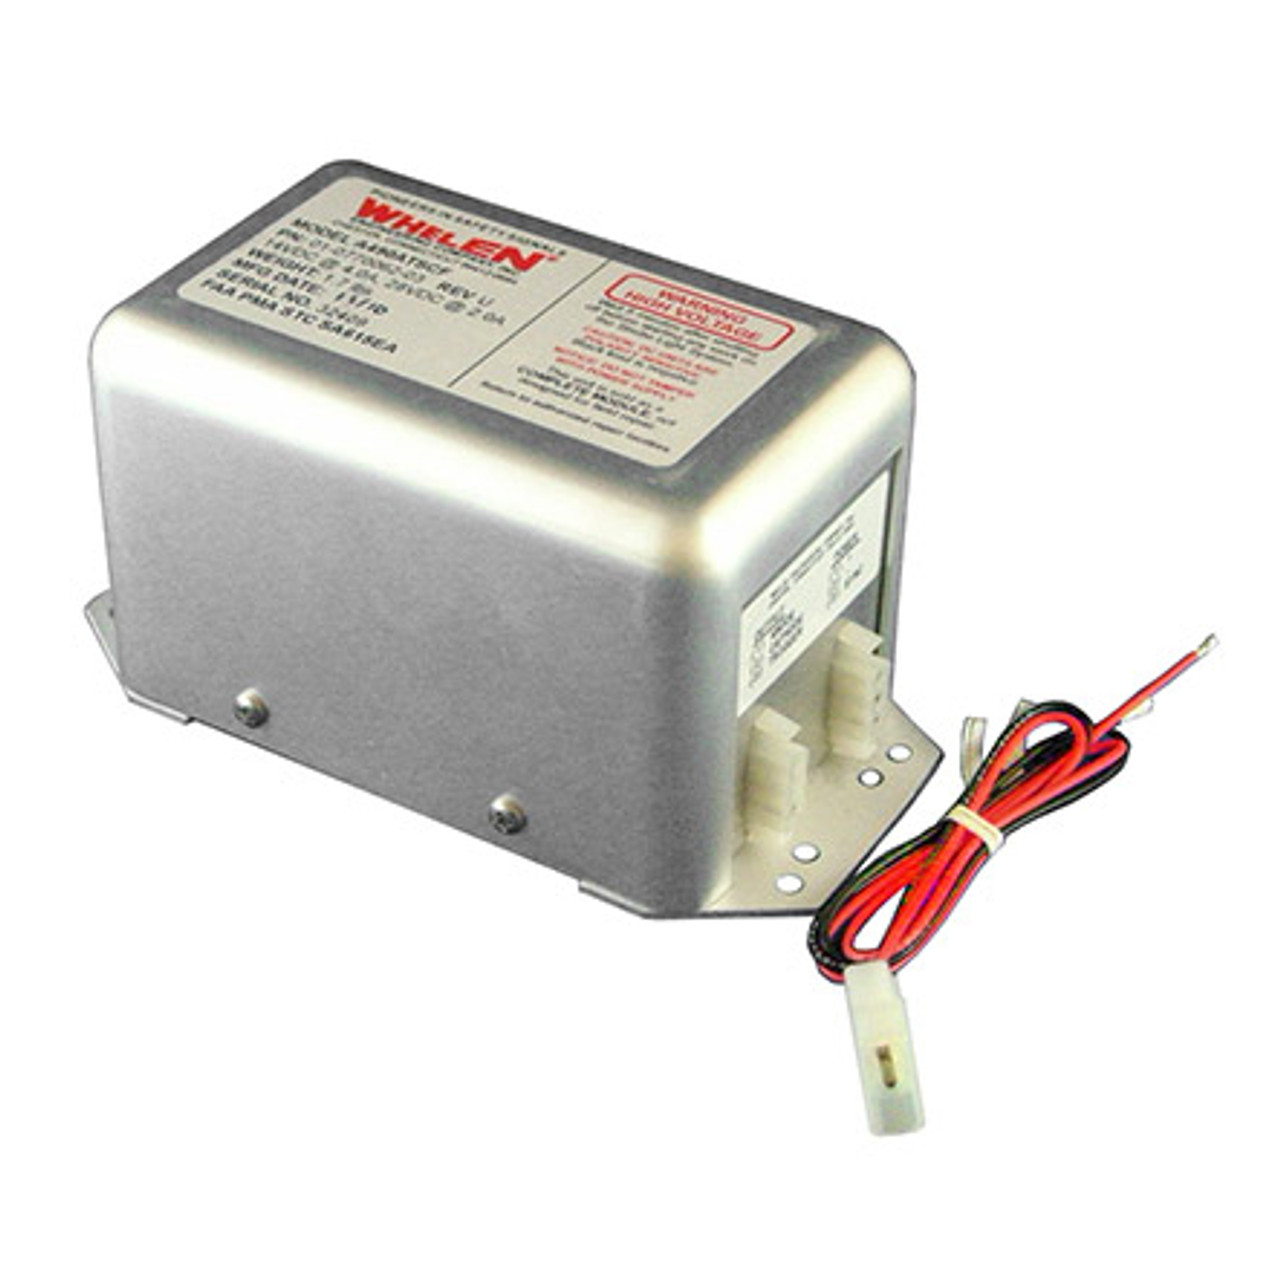 Whelen 01-0770028-05 Model HDACF Strobe Power Supply - Part#: 01-0770028-05by Whelen The model HDACF series provides simultaneous flashing, alternate flashing or both. It will operate one, two or three strobe lightheads. Operating the wing tip strobes in the alternating mode will provide an accumulated 42 joules of power to each light. When in the simultaneous mode, the accumulated power to each light is 21 joules. In the three light mode, the wing tips will flash simultaneous at an accumulated 21 joules each, they alternate with a third light operating at an accumulated 42 joules. On the trigger selector outlet, a switch mounted in place of the jumper will allow wing tip outlets 2 & 3 to be turned off, while the tail outlet 1 will remain on. This function is commonly used when the third light is for ground operations. This power supply will operate from 10 to 30 VDC.